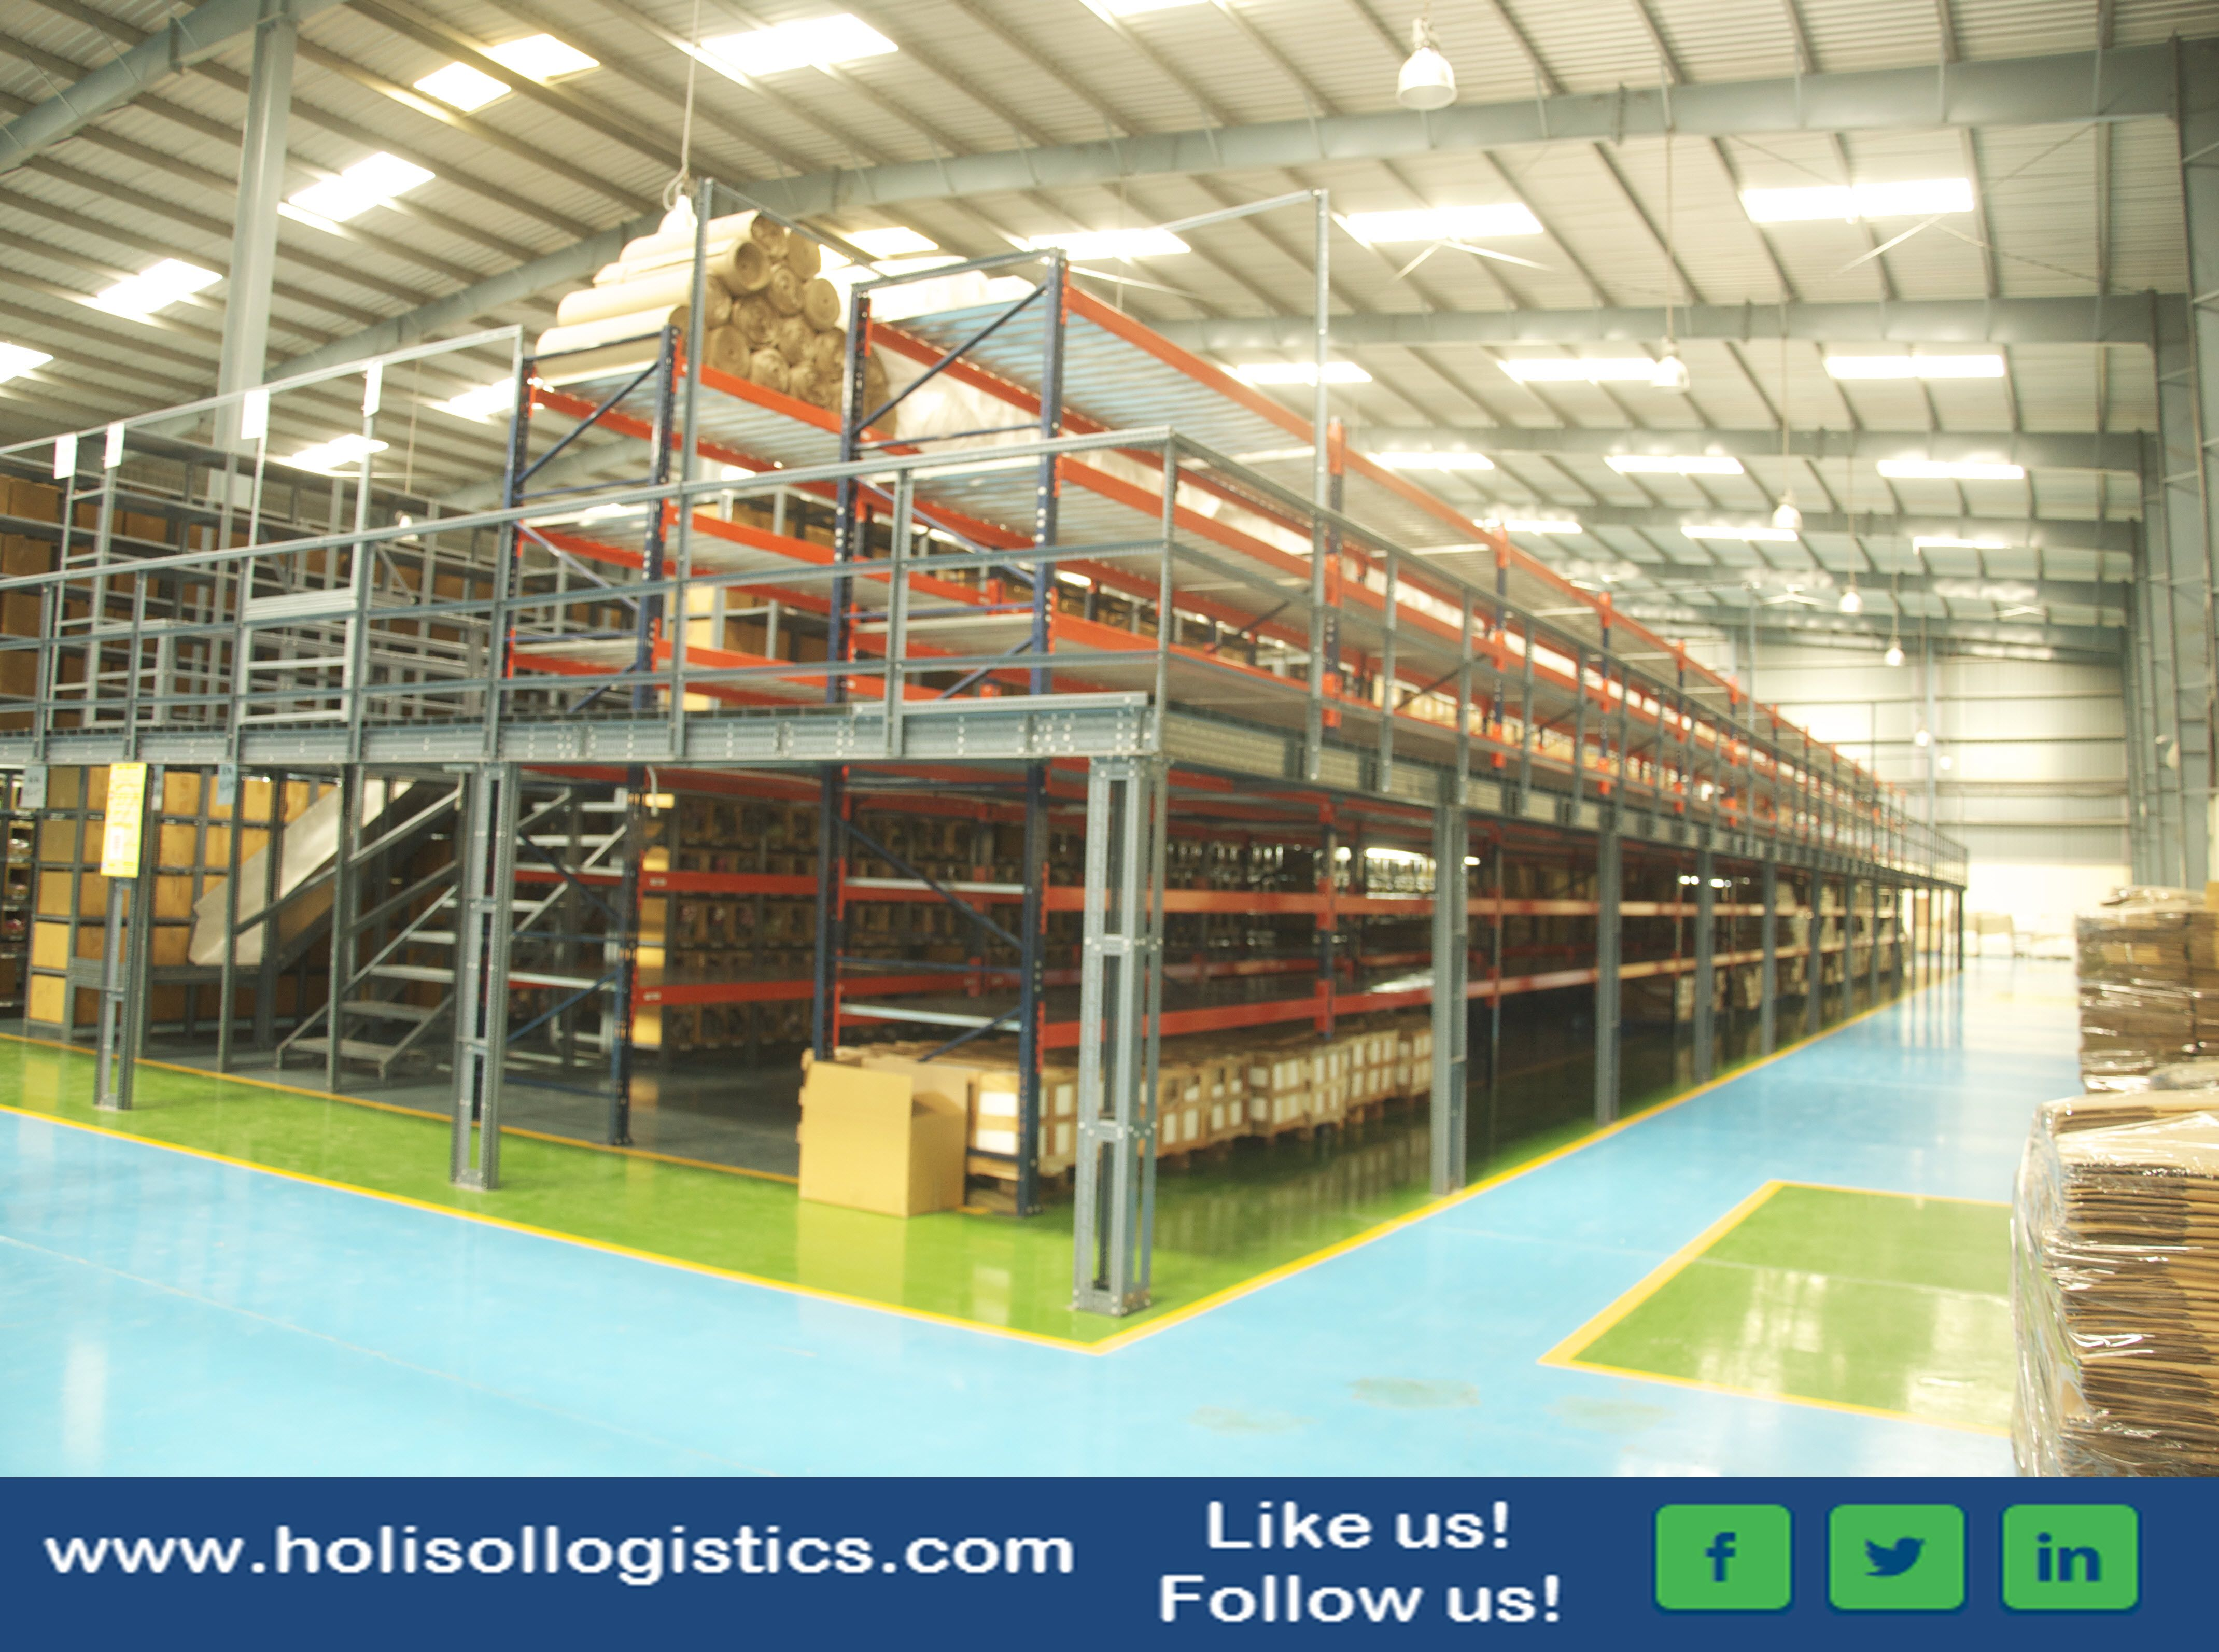 Catwalk Shelving Are Multi Level Storage System That Are Designed